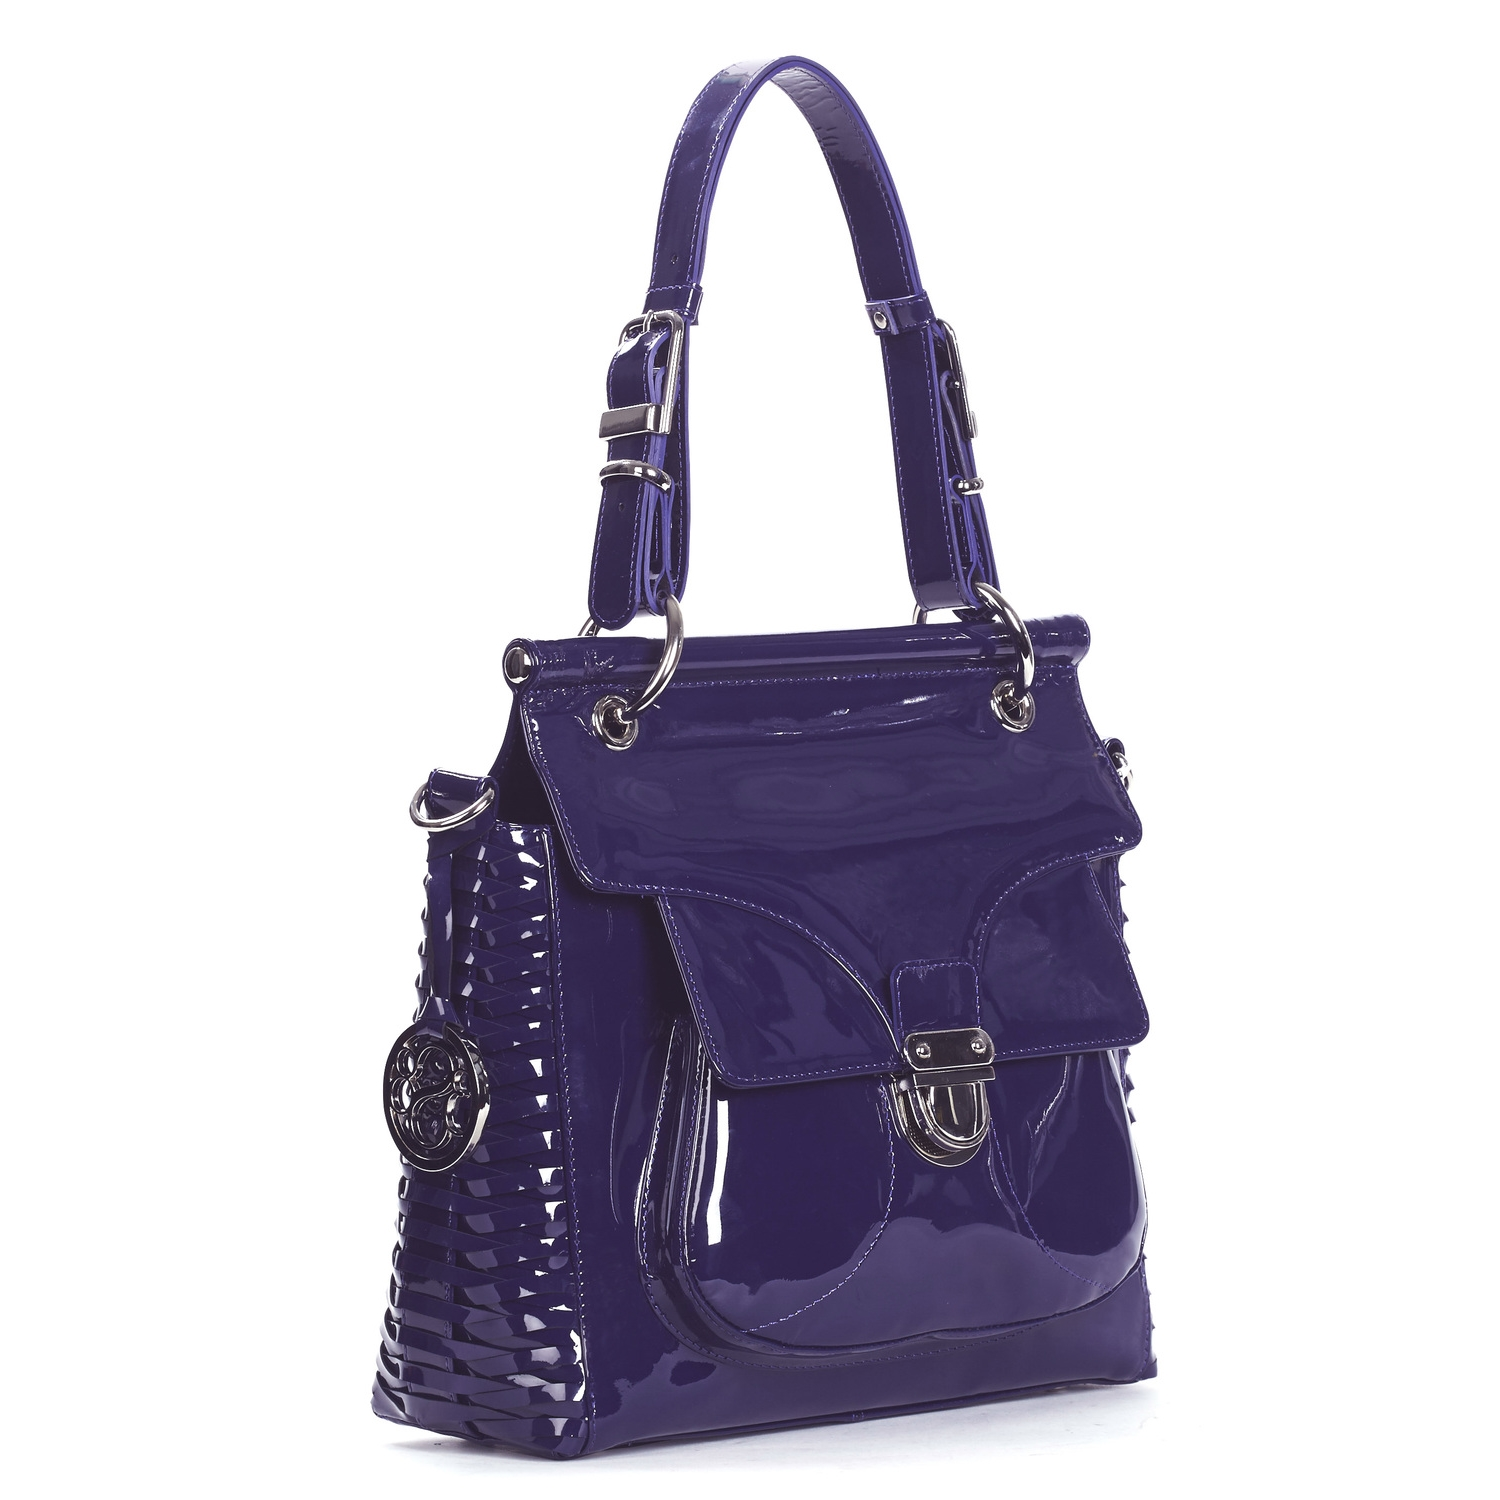 MAJESTIC MULBERRY - $575.00